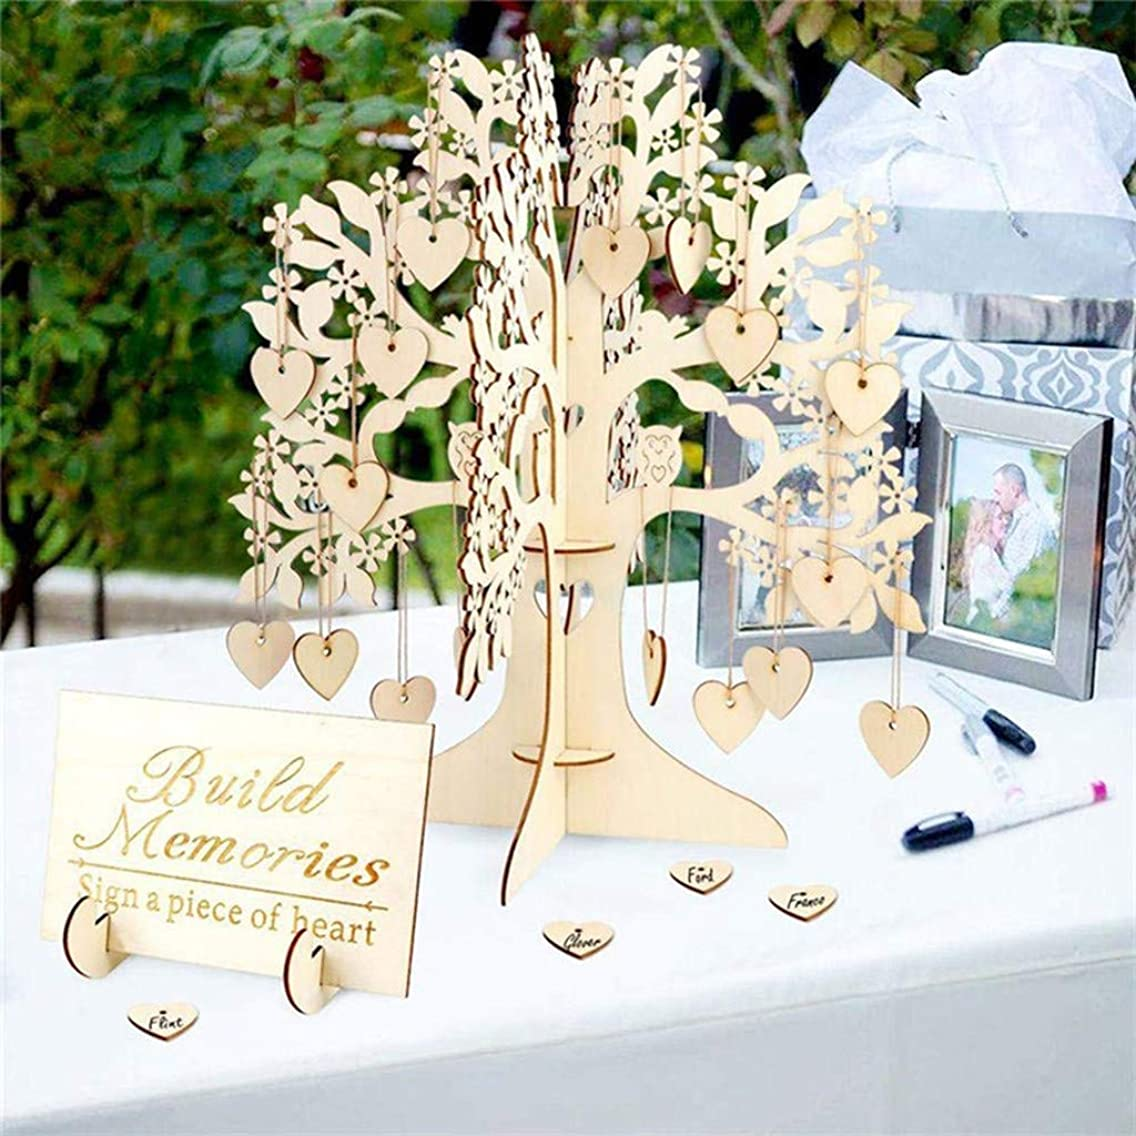 Tpingfe Wedding Guest Book Tree Wooden Hearts Pendant Drop Ornaments Party Decoration